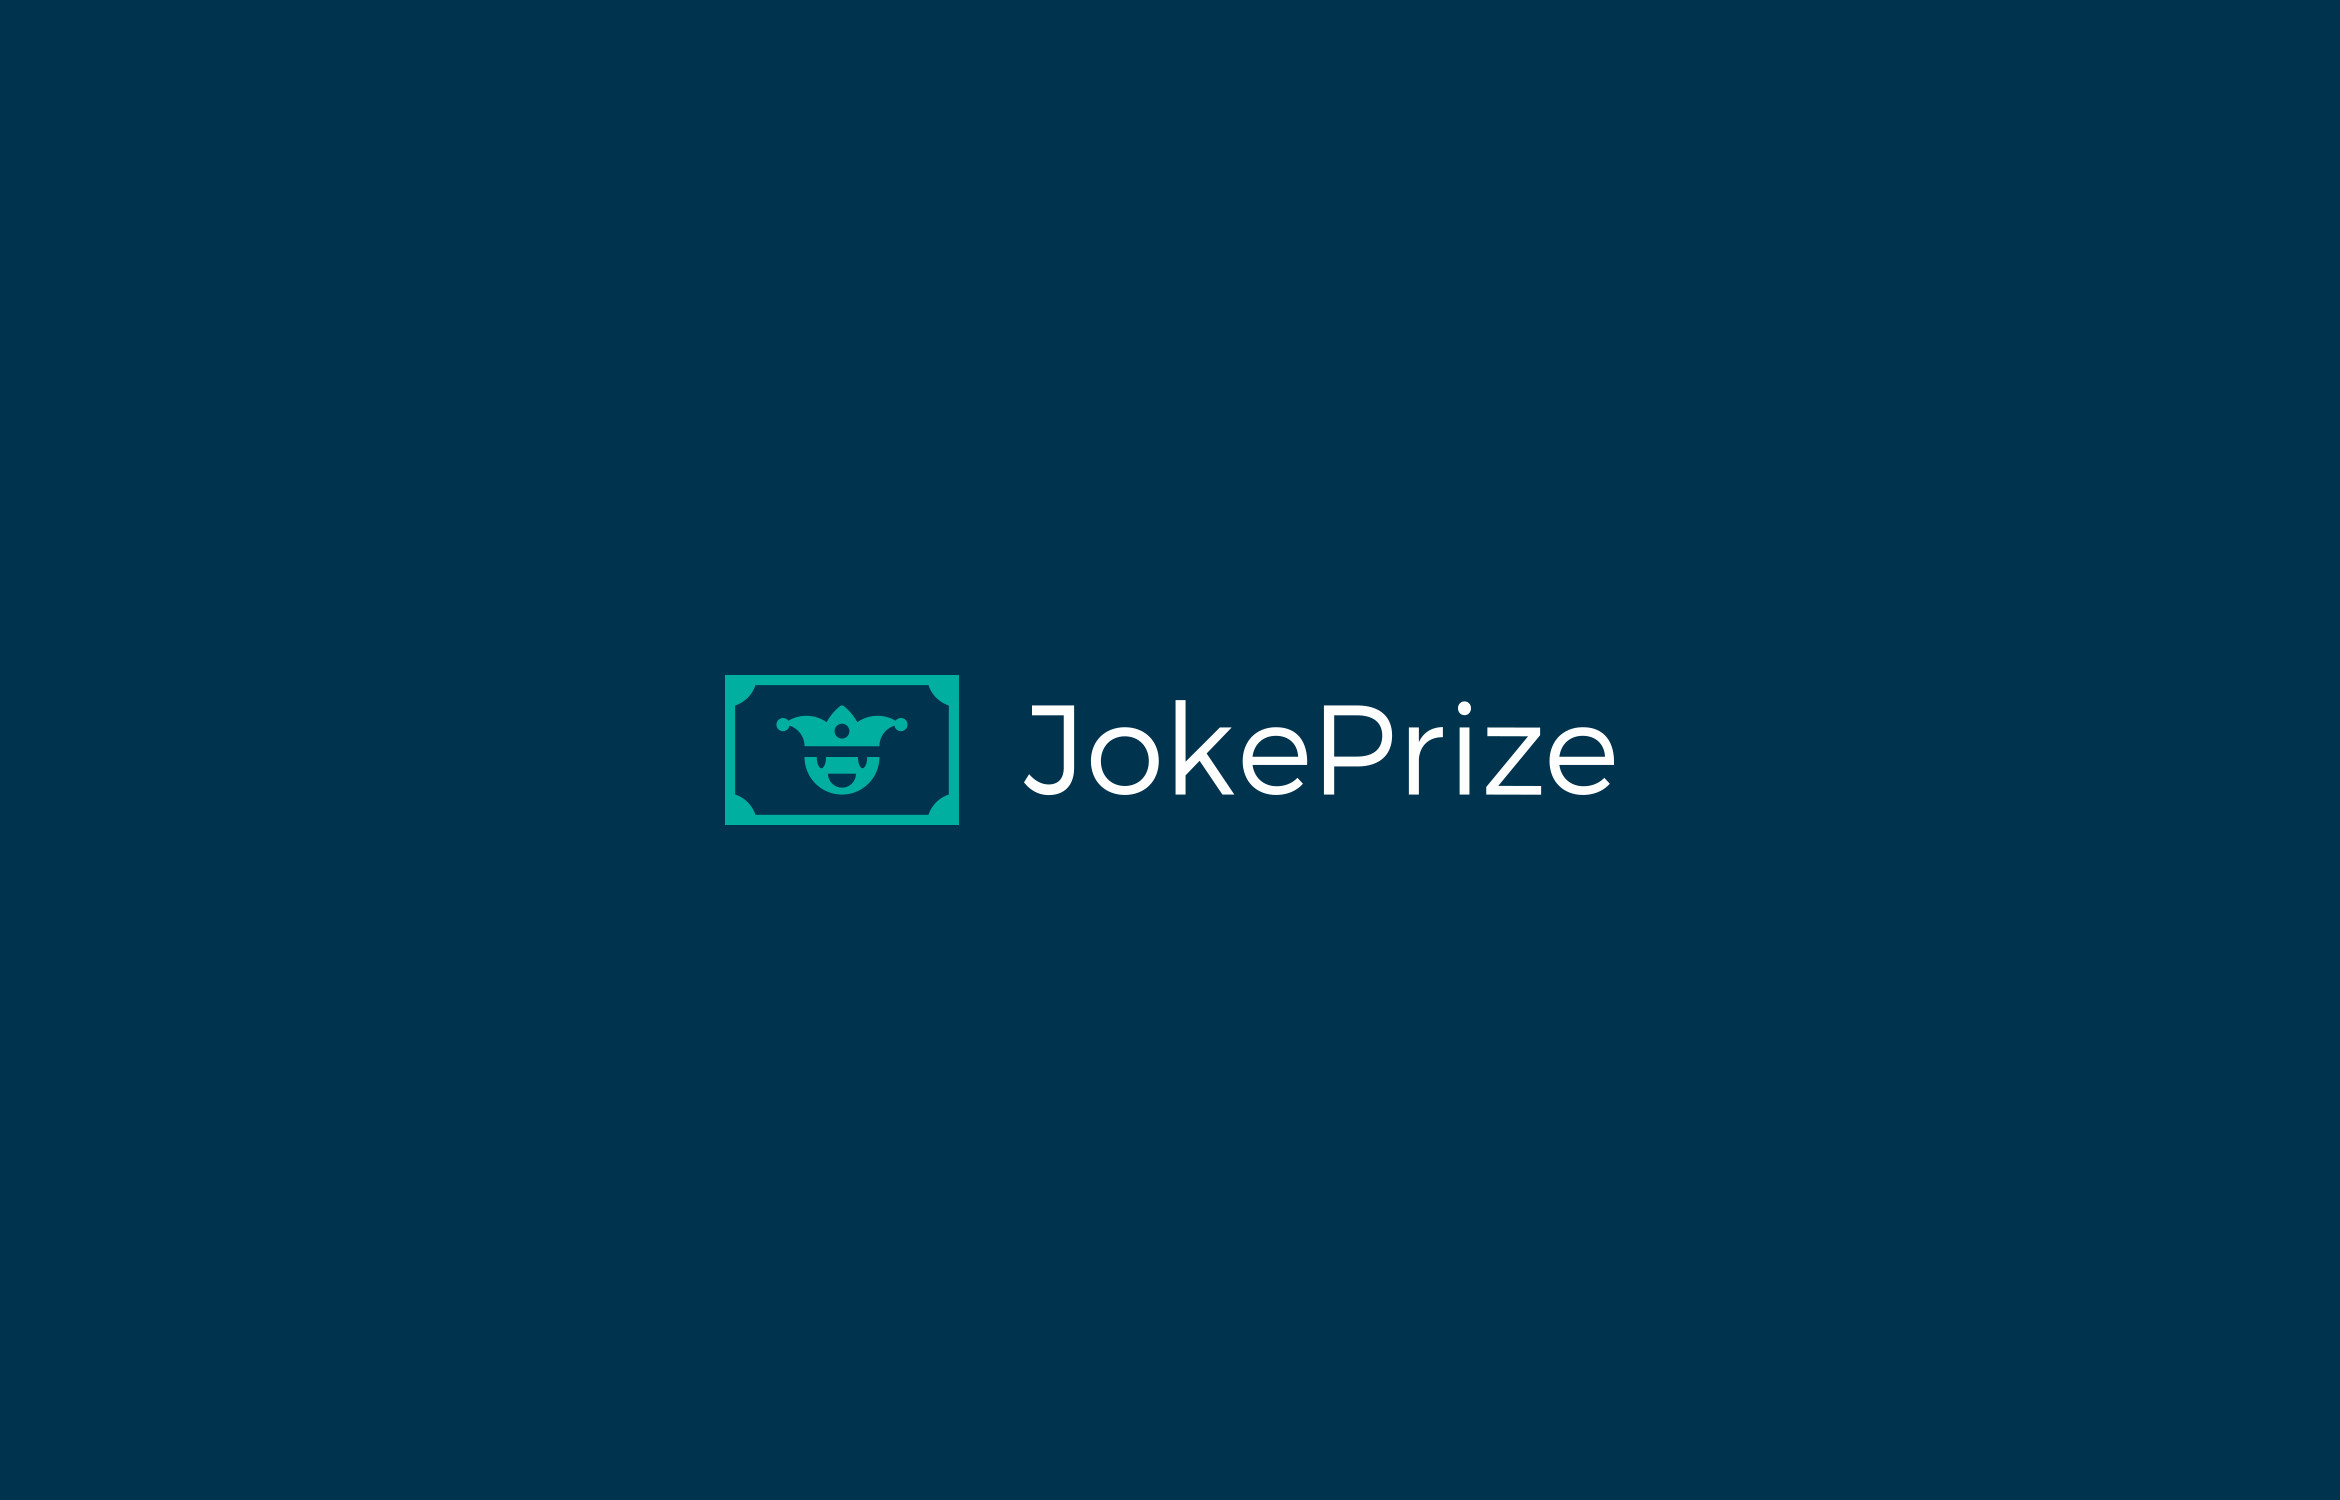 logo_jokeprize_reversed